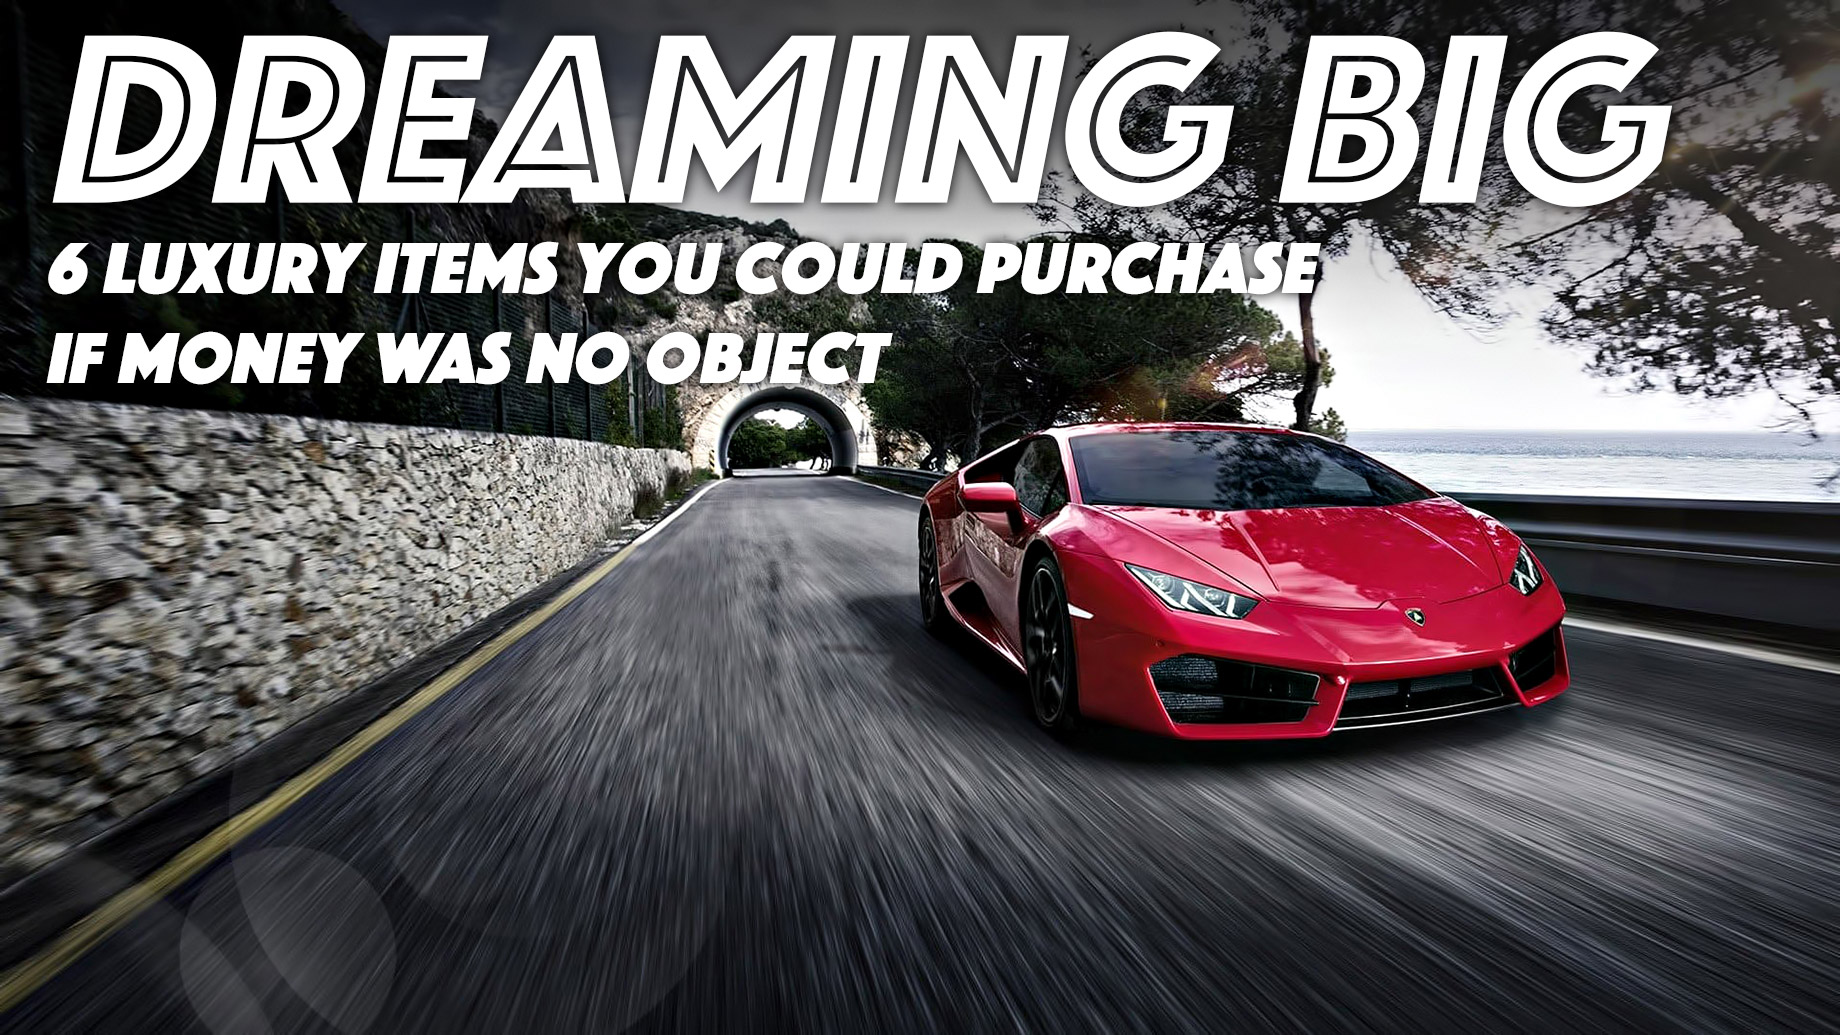 Dreaming Big - 6 Luxury Items You Could Purchase if Money Was No Object